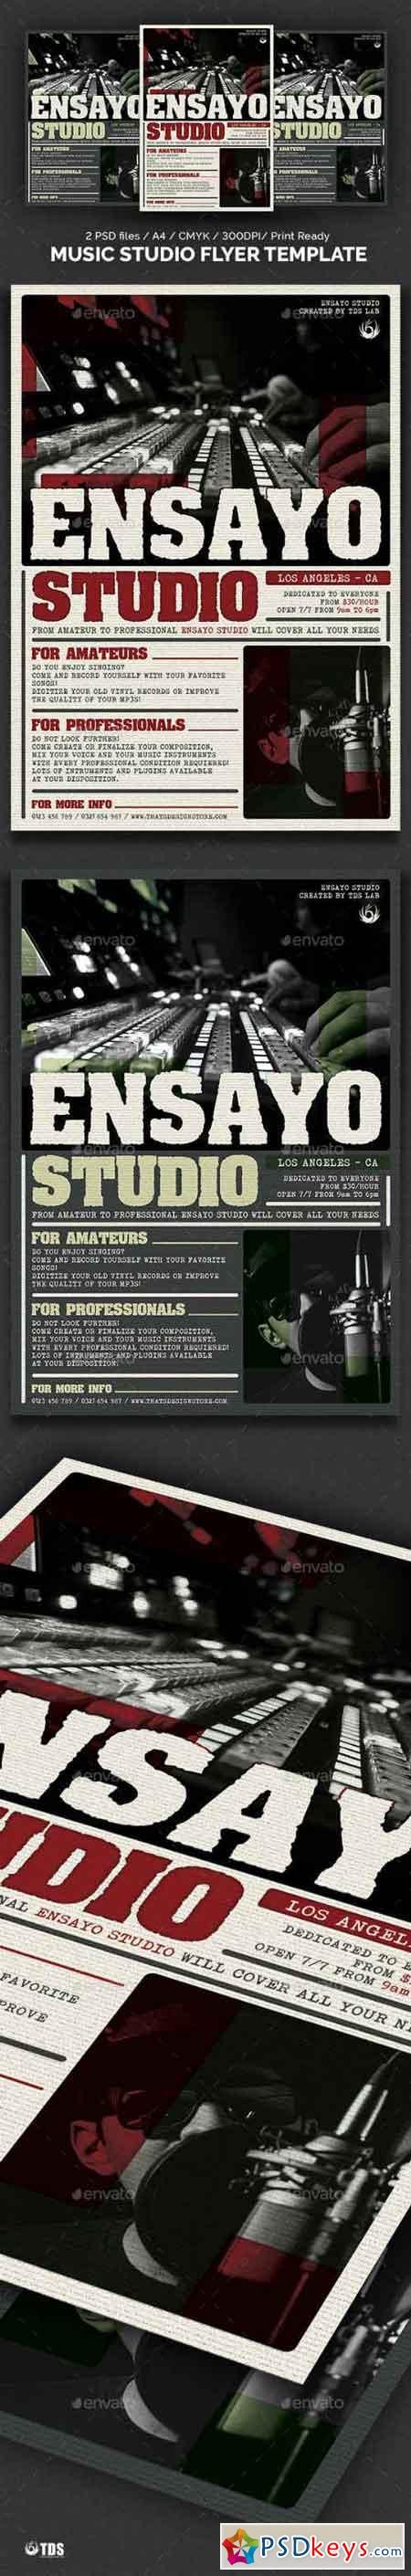 Music Studio Flyer Template 19344239